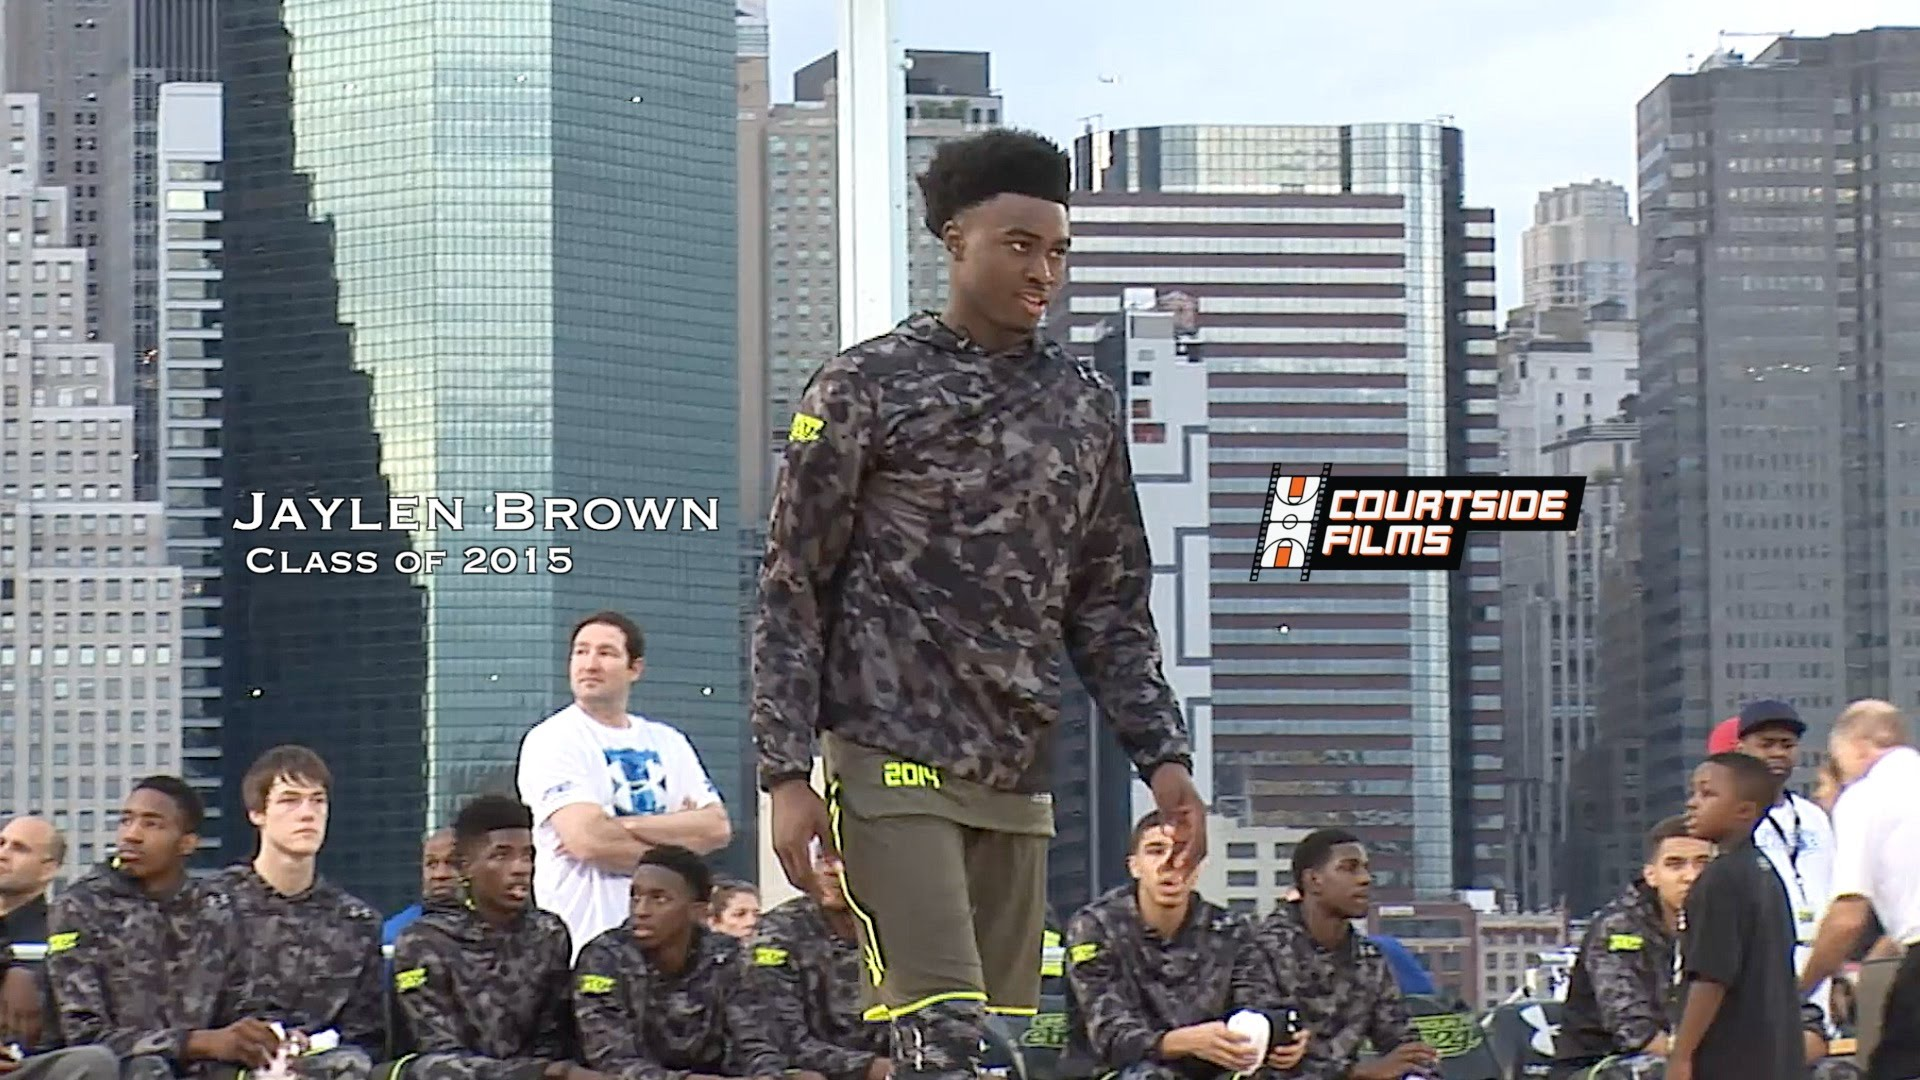 No. 2 ranked Jaylen Brown 'very interested' in Michigan, hopes to take official visit